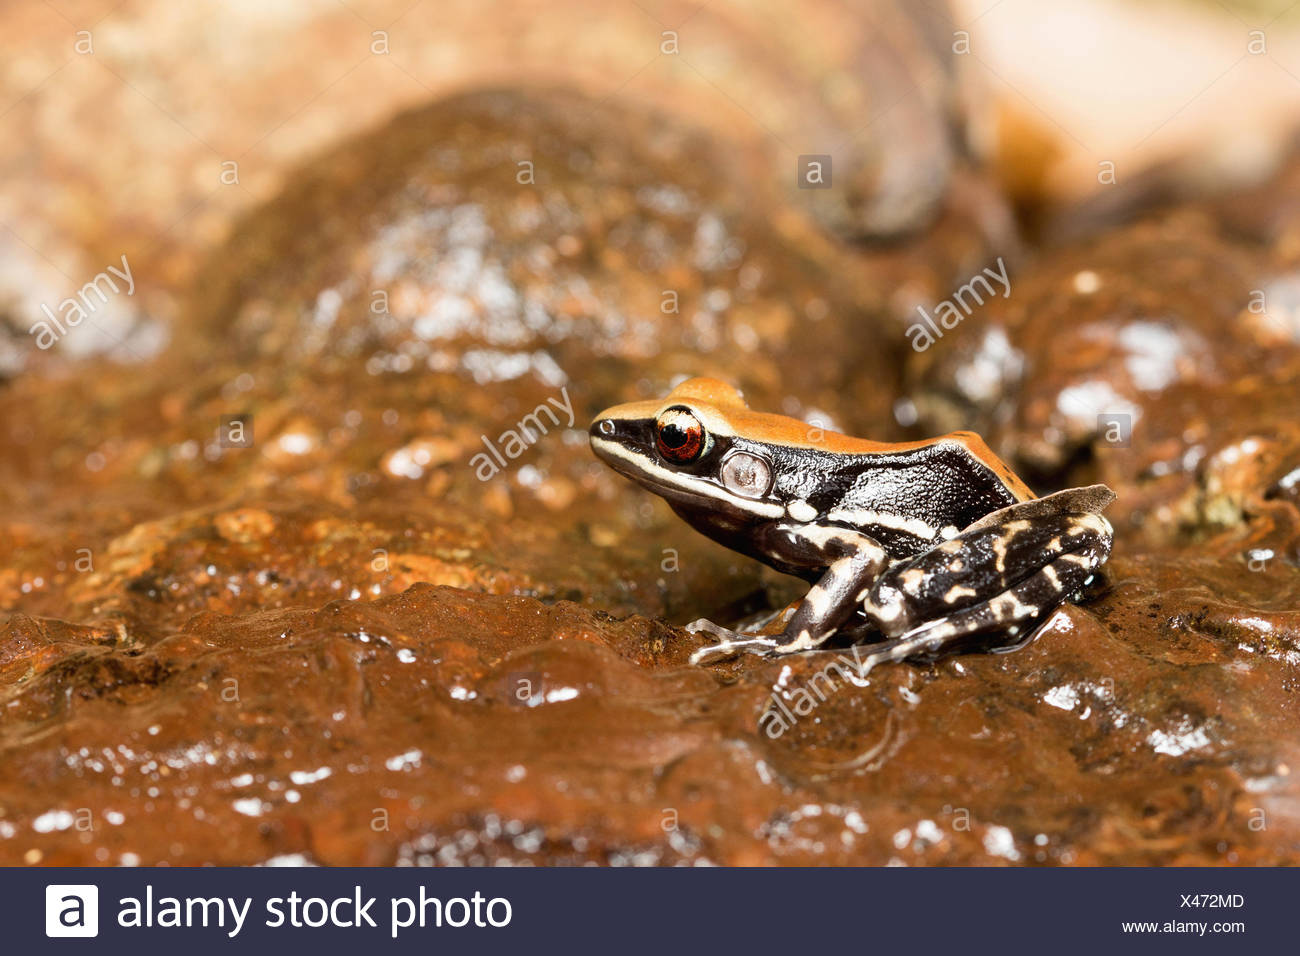 Fungoid frog, Hydrophylax bahuvistara, Kanger Valley National Park, Chhattisgarh. A large colourful frog. - Stock Image